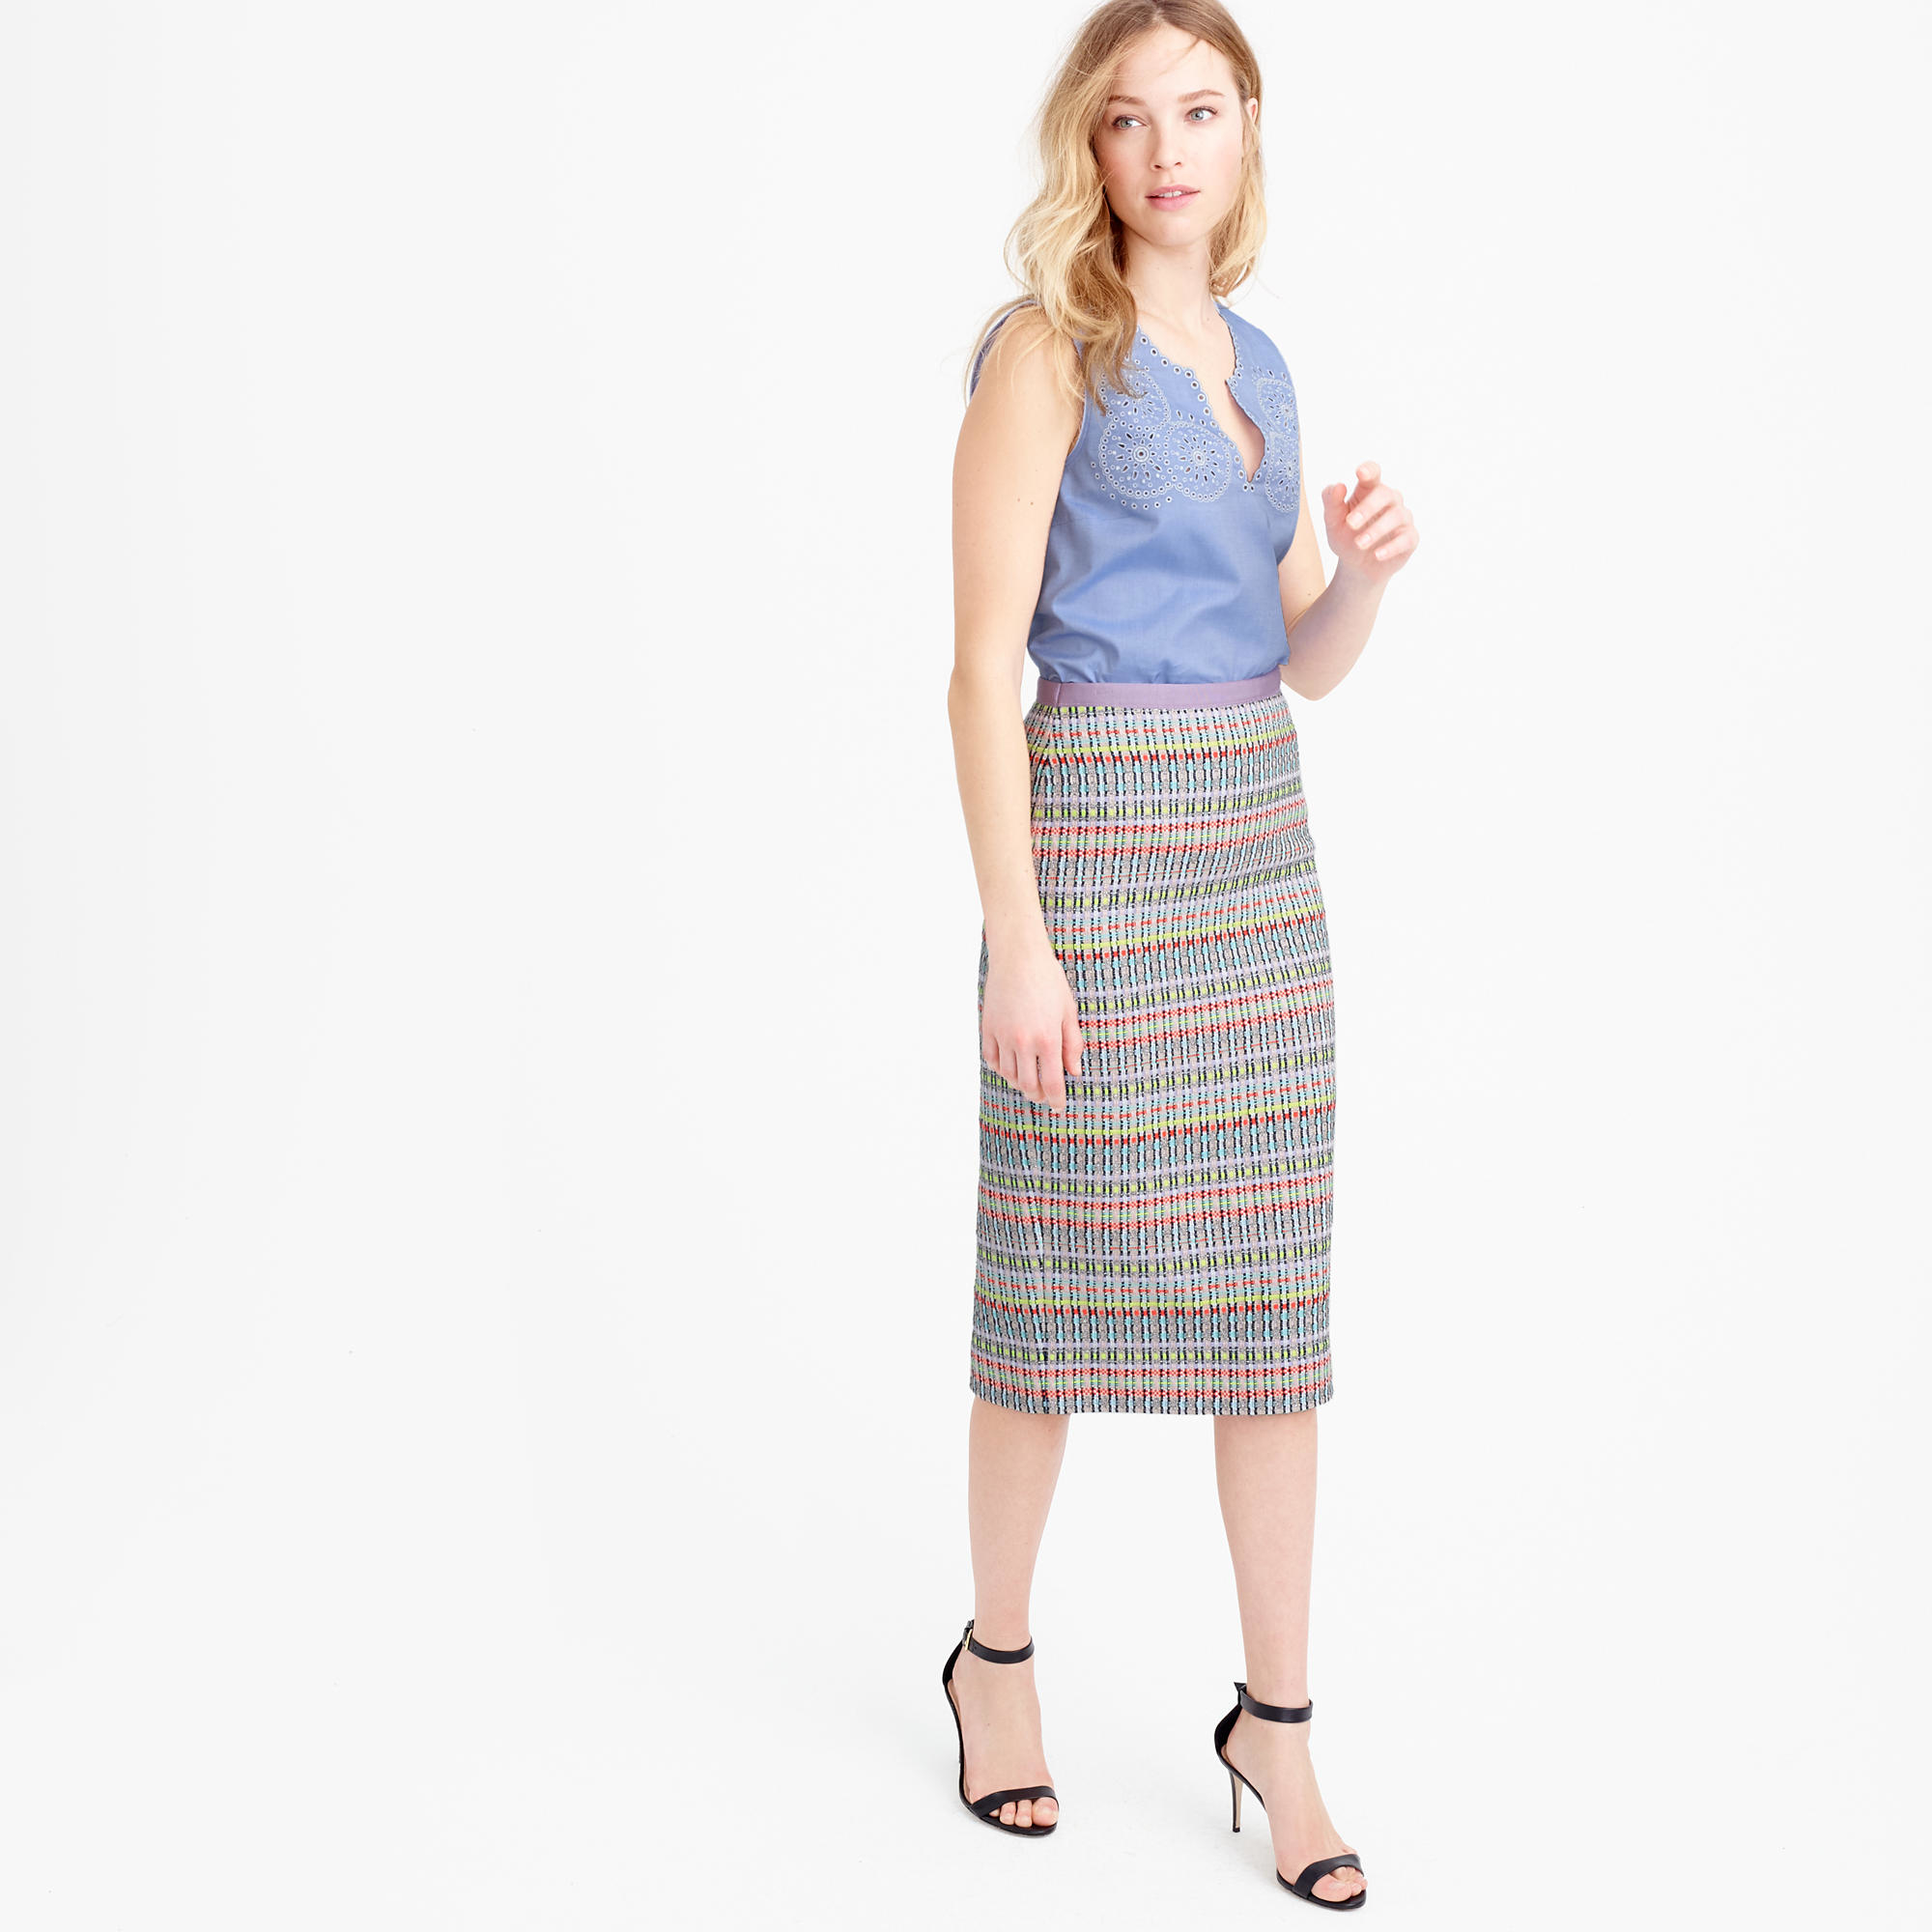 89f76dd5b113 J.Crew Collection Neon And Metallic Tweed Pencil Skirt in Gray - Lyst